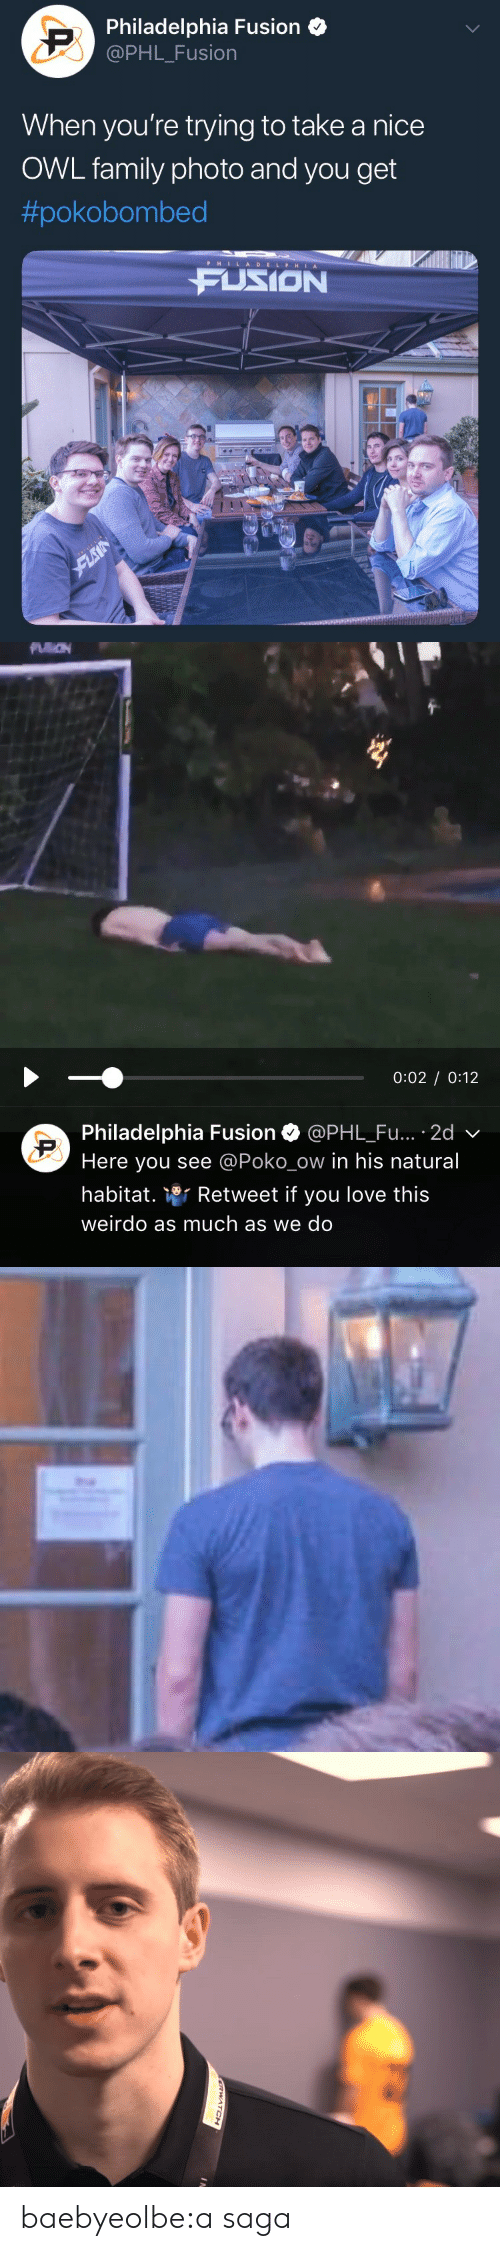 Family, Love, and Tumblr: Philadelphia Fusion  @PHL_Fusion  When you're trying to take a nice  OWL family photo and you get  #pokobombed  P HILADELPHIA  FUSION   0:02 0:12  Philadelphia Fusion Ф @PHL.Fu.. . 2d  Here you see @Poko_ow in his natural  habitat. Retweet if you love this  weirdo as much as we do baebyeolbe:a saga